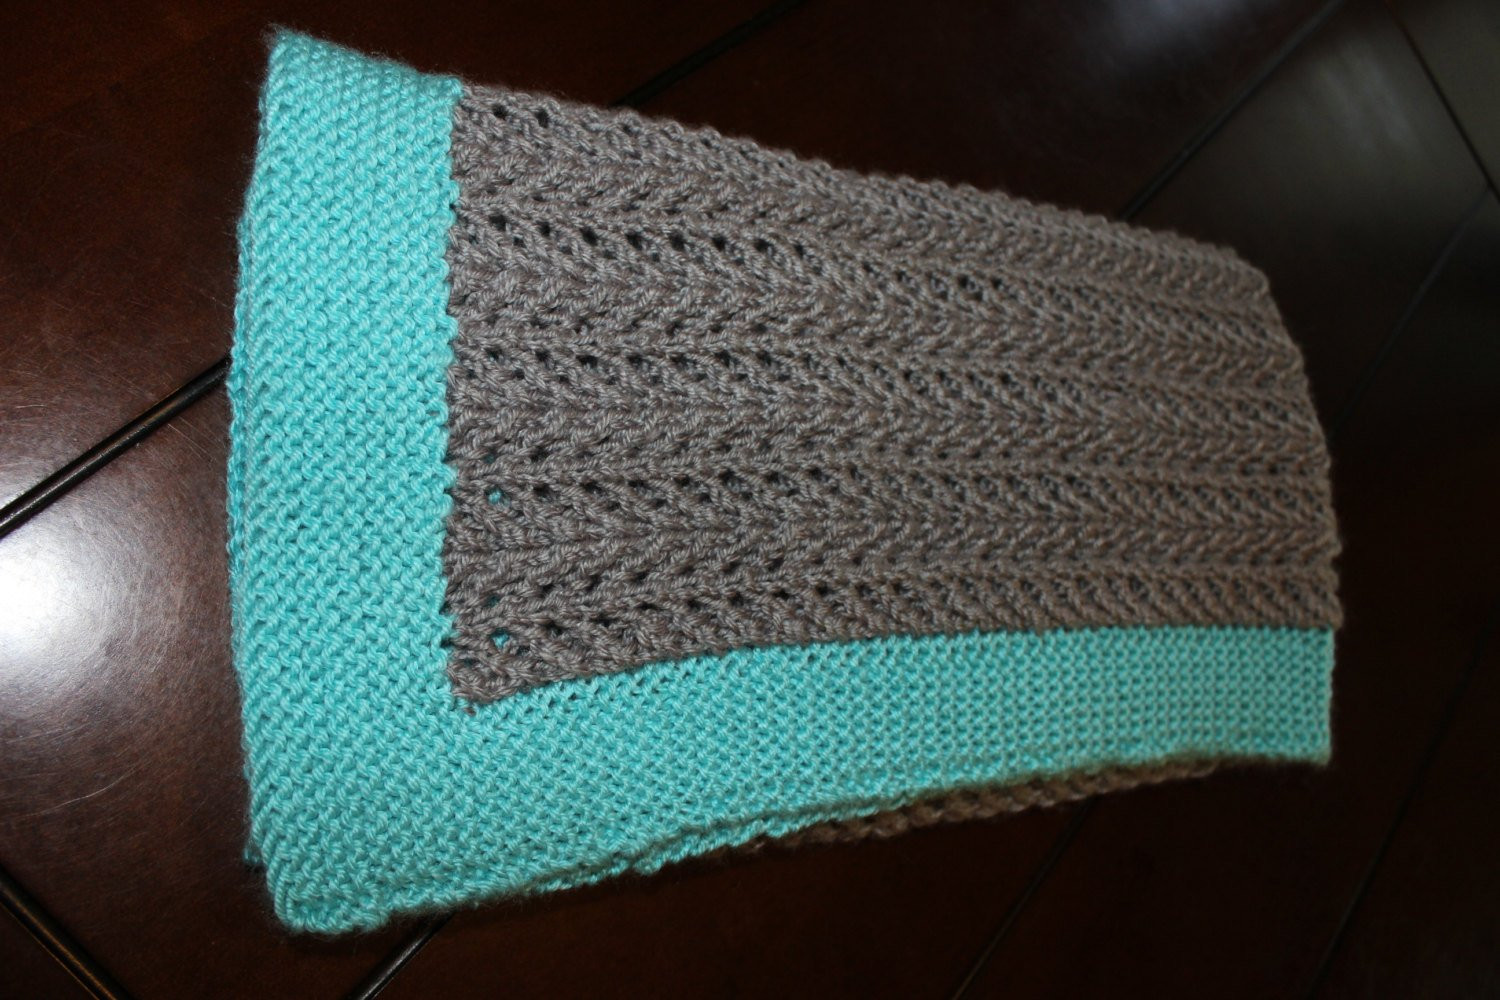 New Hand Knitted Baby Blanket Hand Knitted Baby Blankets Of Gorgeous 42 Pics Hand Knitted Baby Blankets